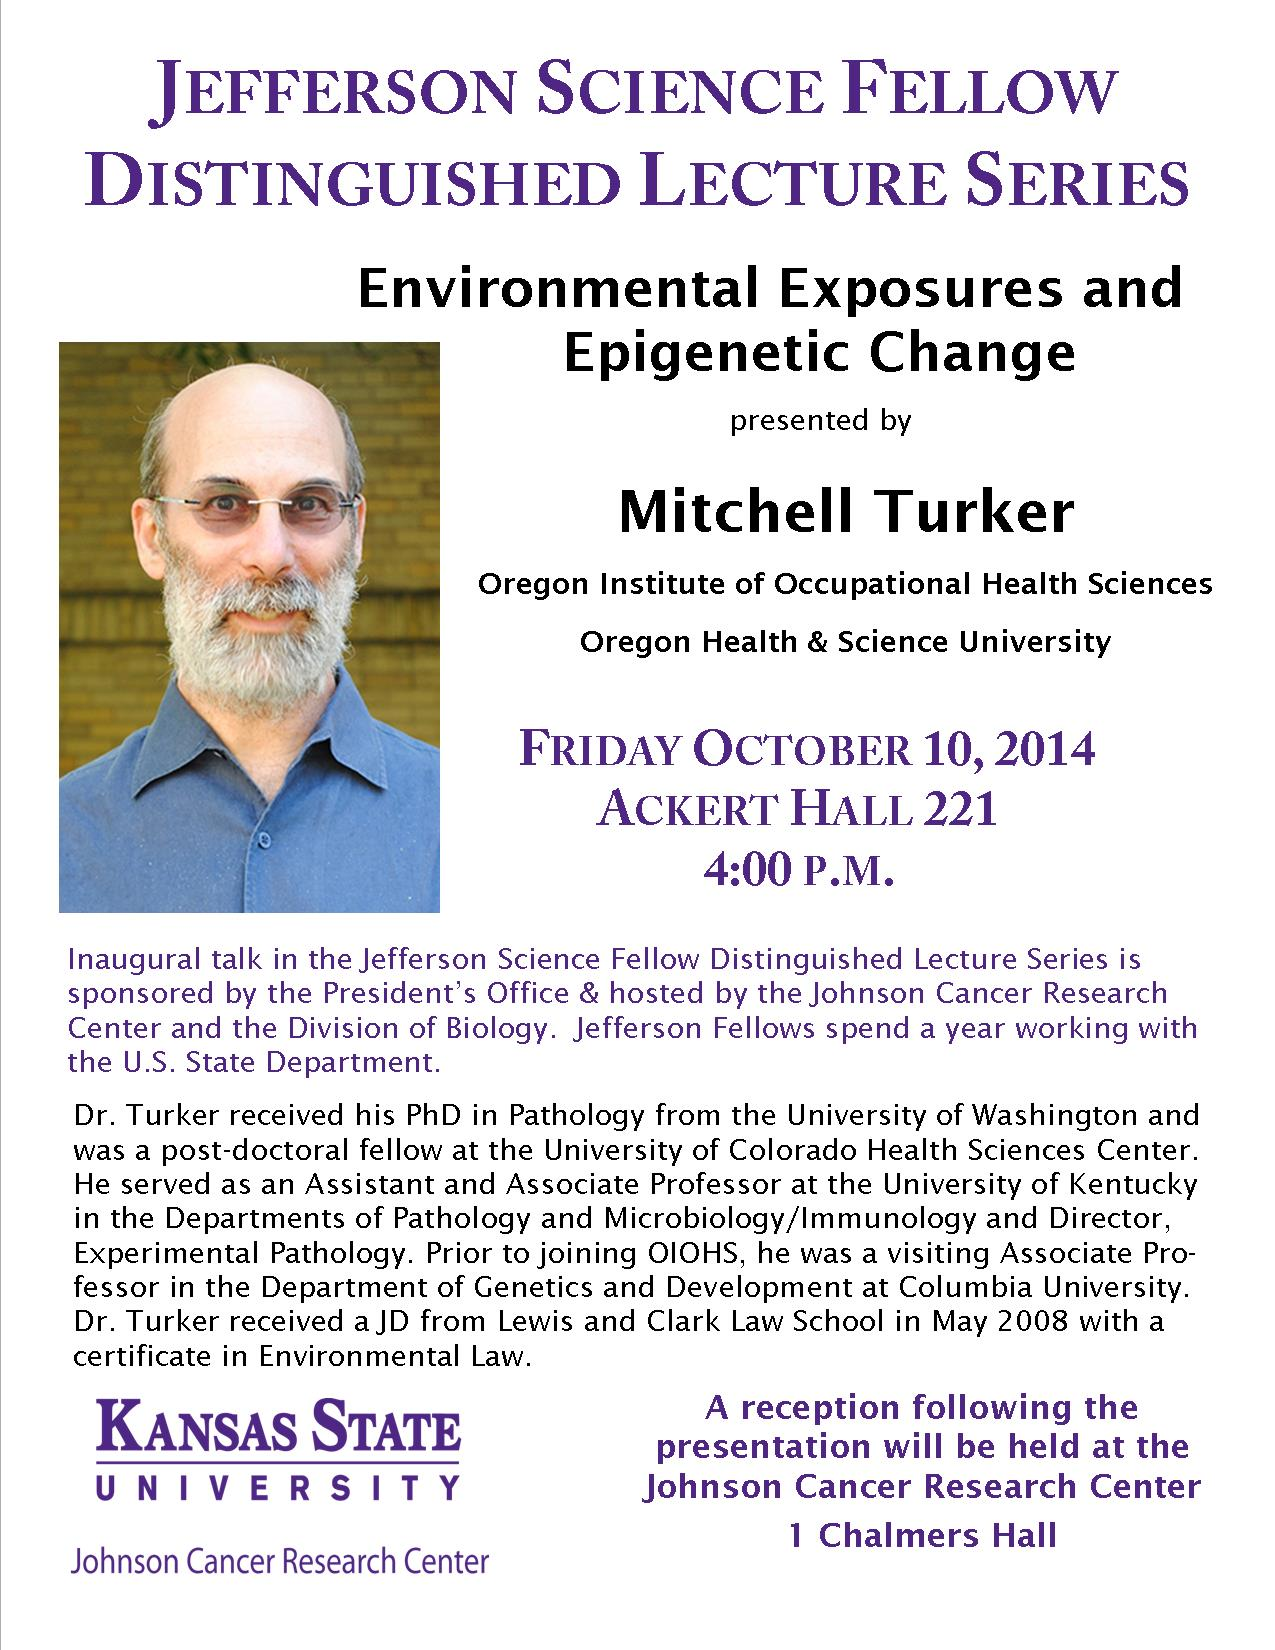 2014 Jefferson Science Fellow Distinguished Lecture by Dr. Mitchell Turker